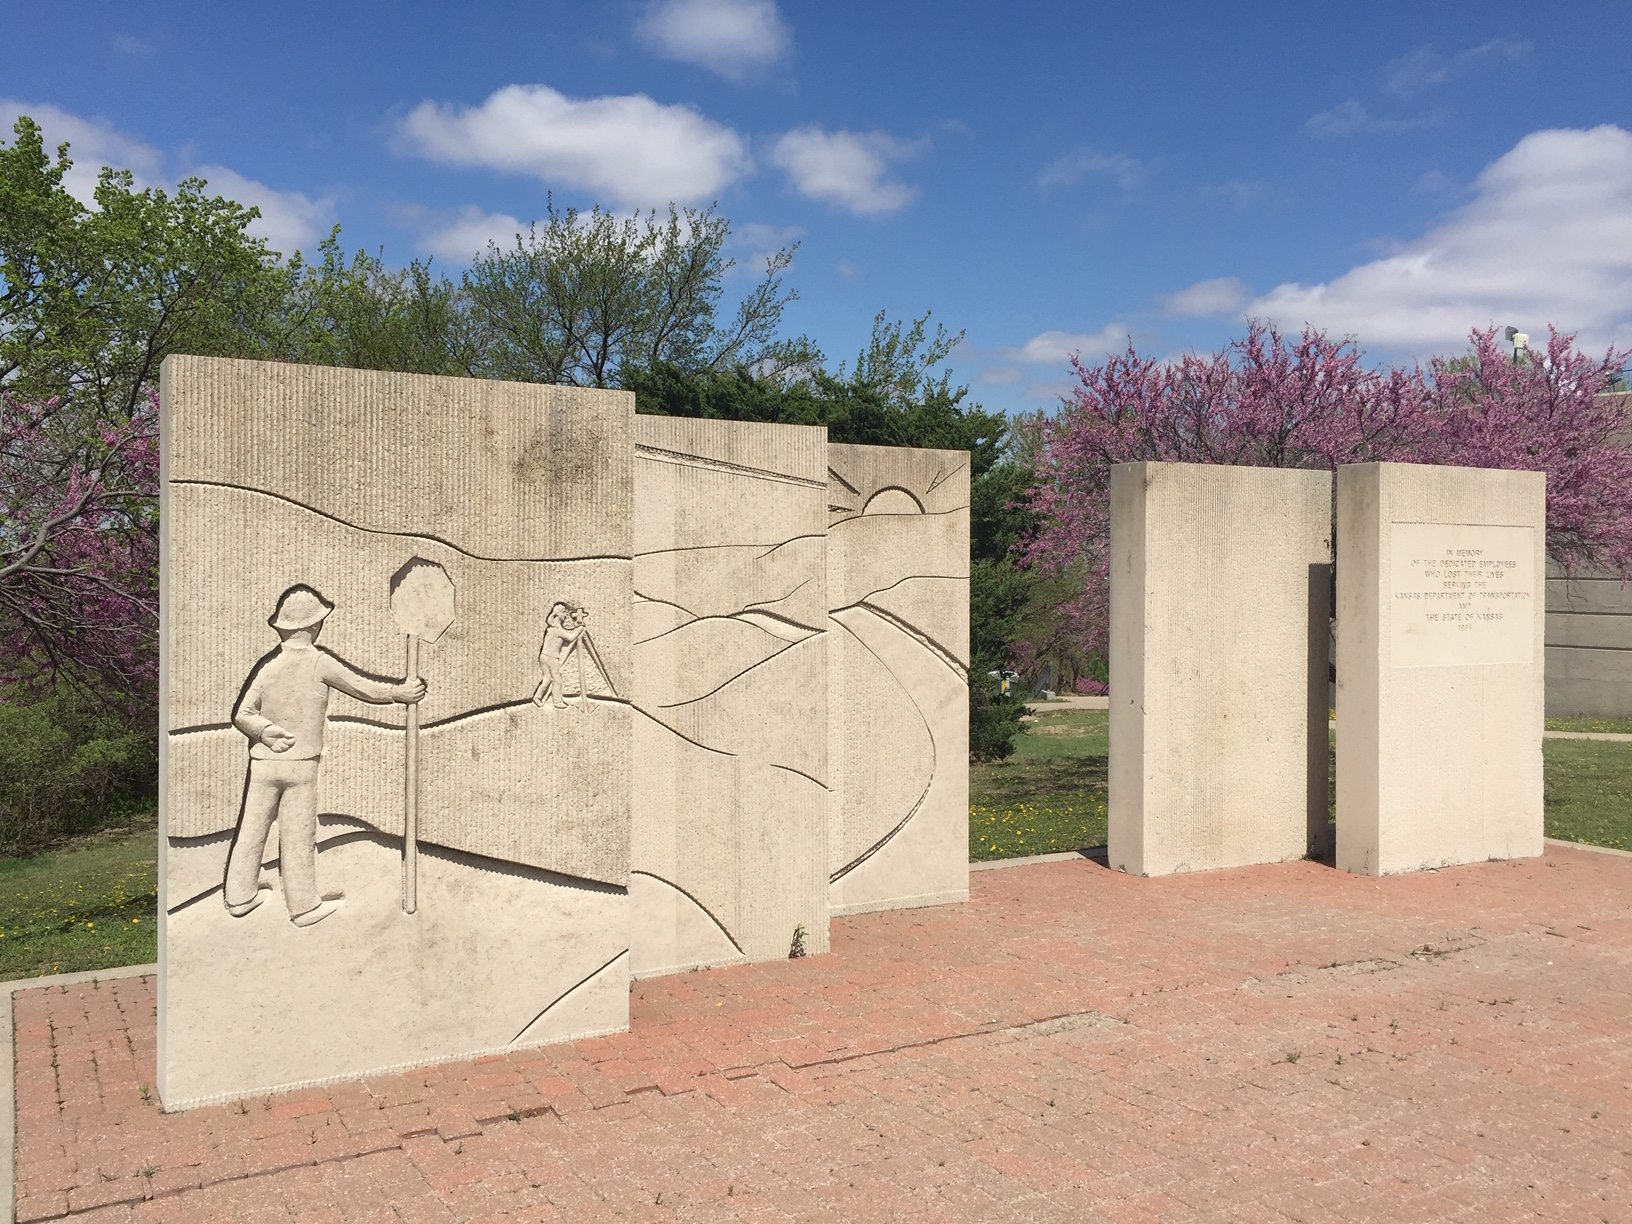 This memorial, honoring Kansas highway workers killed on the job, can be seen at the Paxico Rest Area, along Interstate 70, in Wabaunsee County. (Photo by J. Schafer)